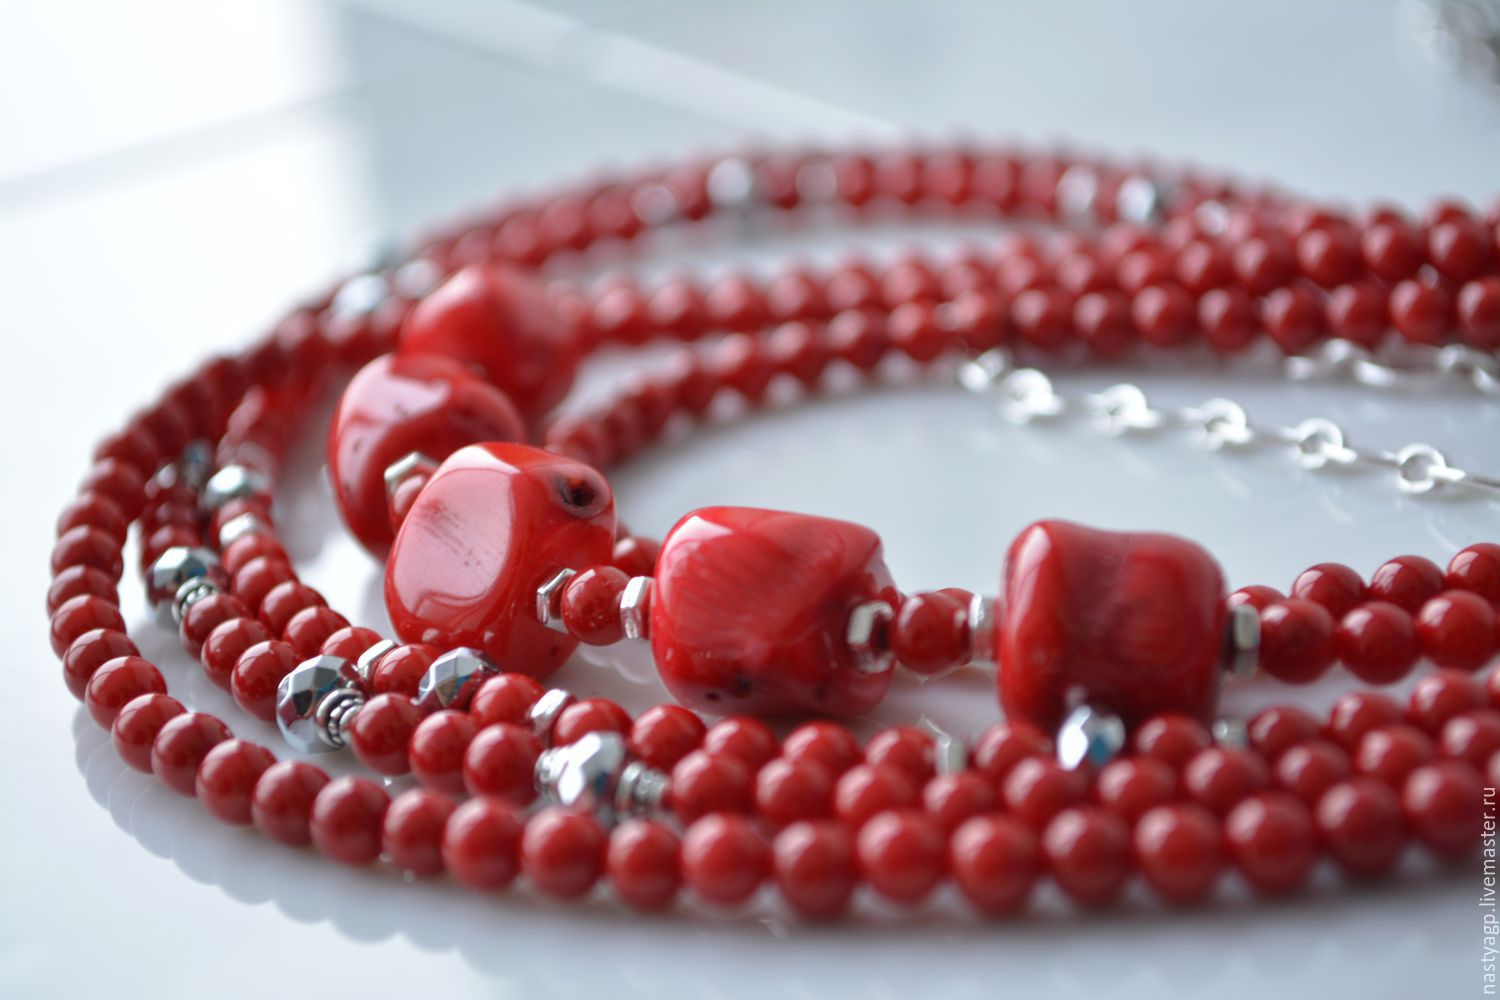 jewelry stones, jewelry beads, red beads, coral beads, red coral decoration gift, beautiful beads, buy beads necklace multi-row necklace